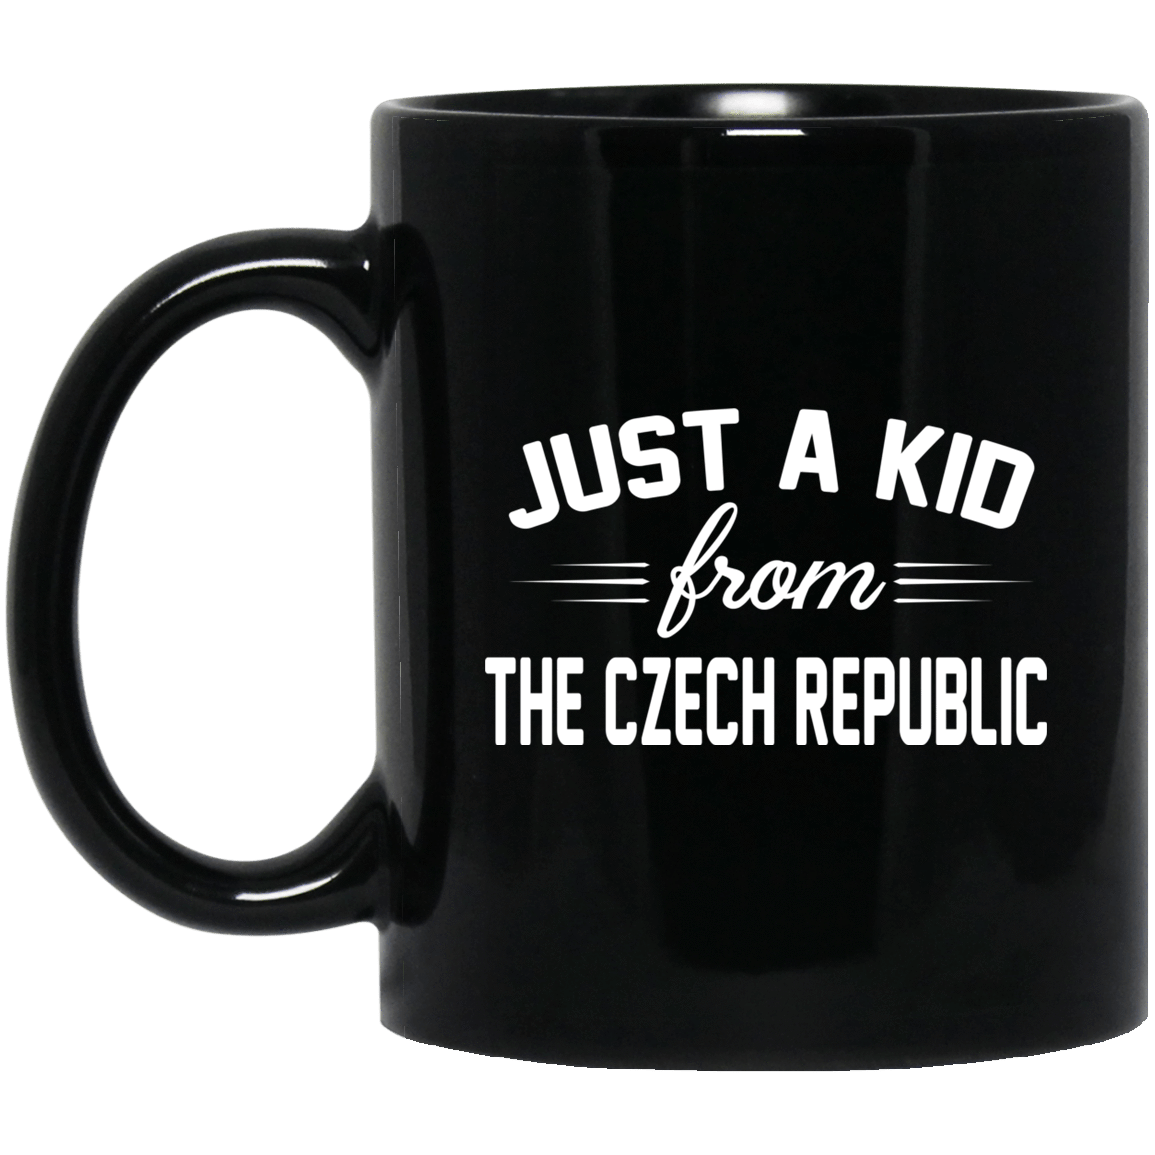 Just A Kid Store | The Czech Republic Mug 1065-10181-72111095-49307 - Tee Ript